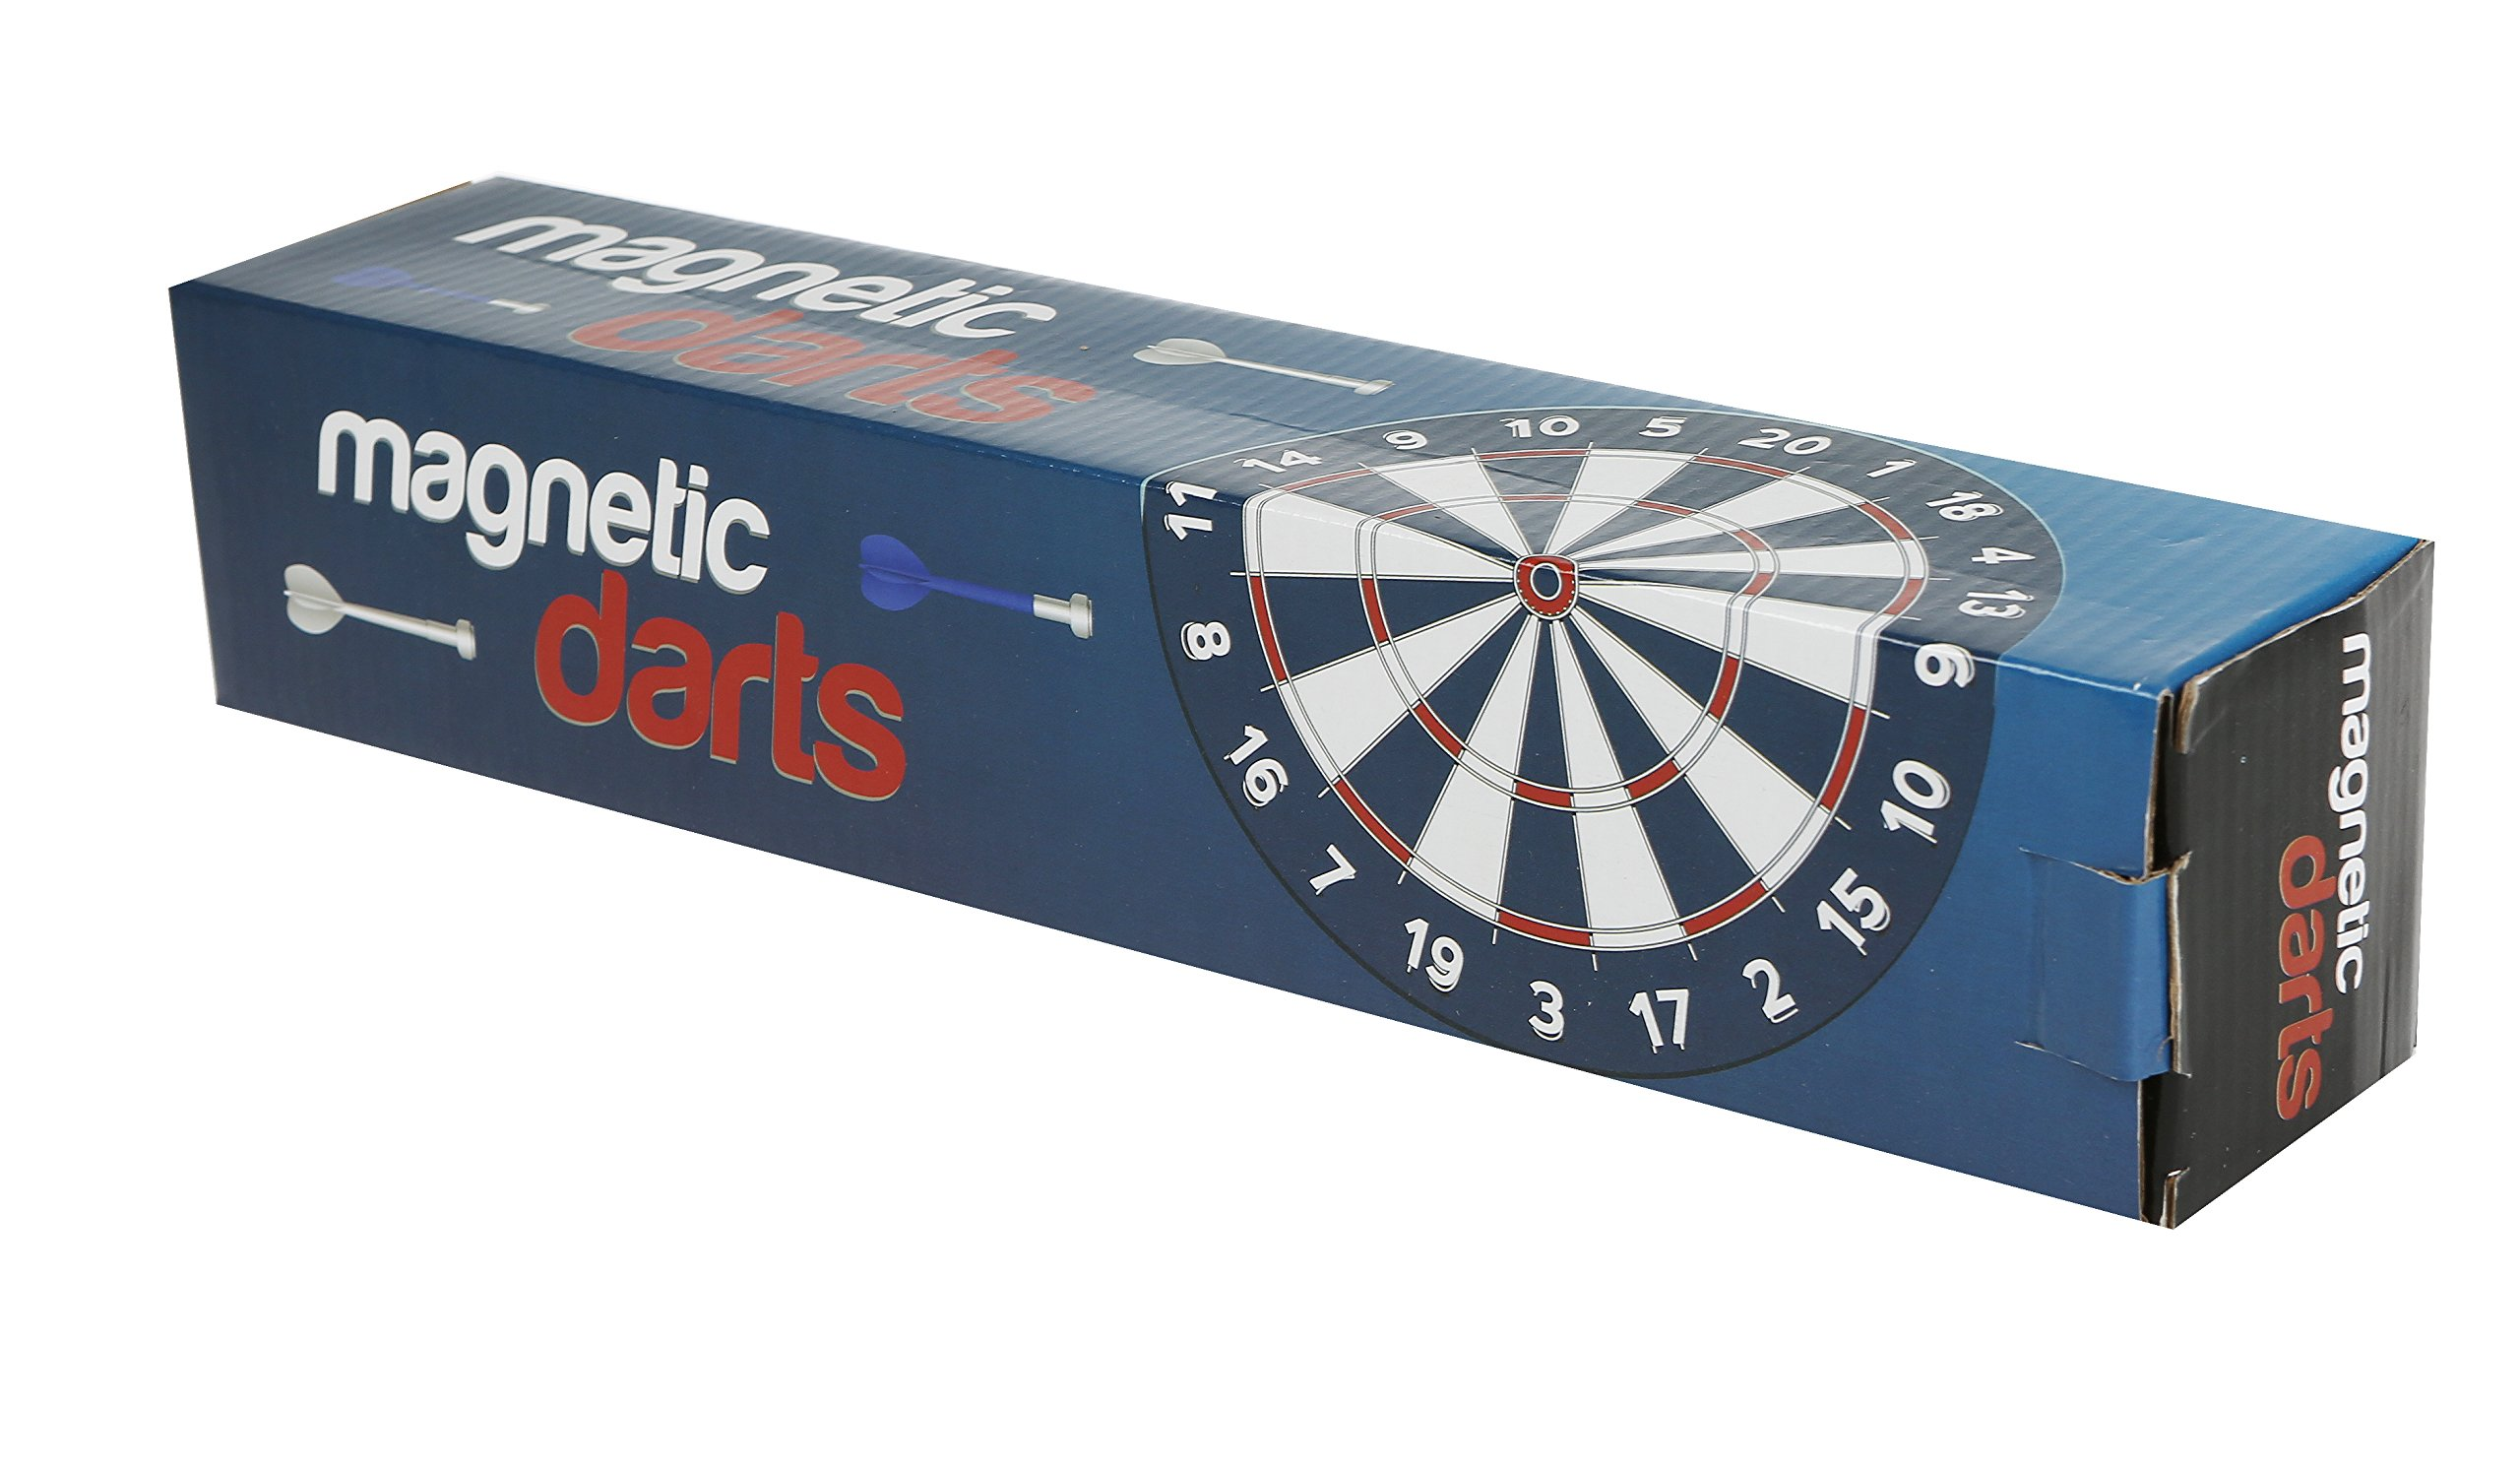 Martinex Magnetic Darts Game - Hanging Dart Board with Two-Sides for Traditional and Competition Play - includes 6 Darts - Rolls Up for Easy Storage and Travel